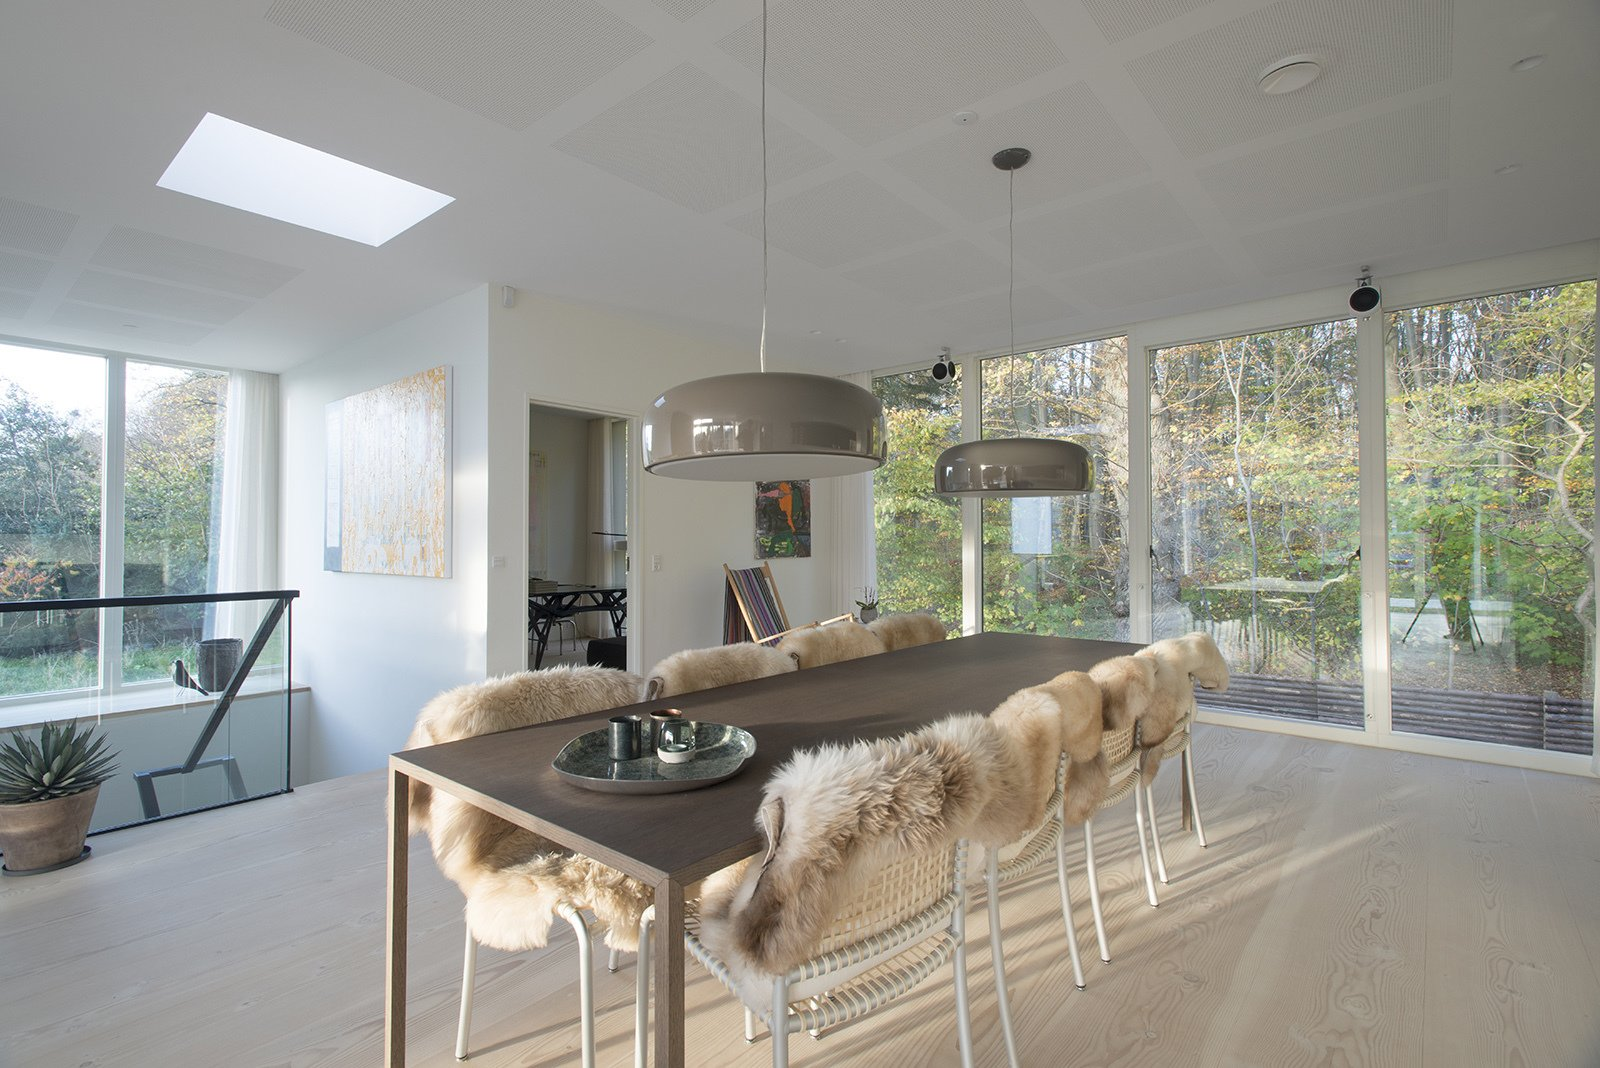 Smithfield pendant lights by Jasper Morrison for Flos illuminate the dining table. Natural wood floors and neutral hues create a spare, yet warm, aesthetic.  Villa R by Diana Budds from Modern Homes in the Forest